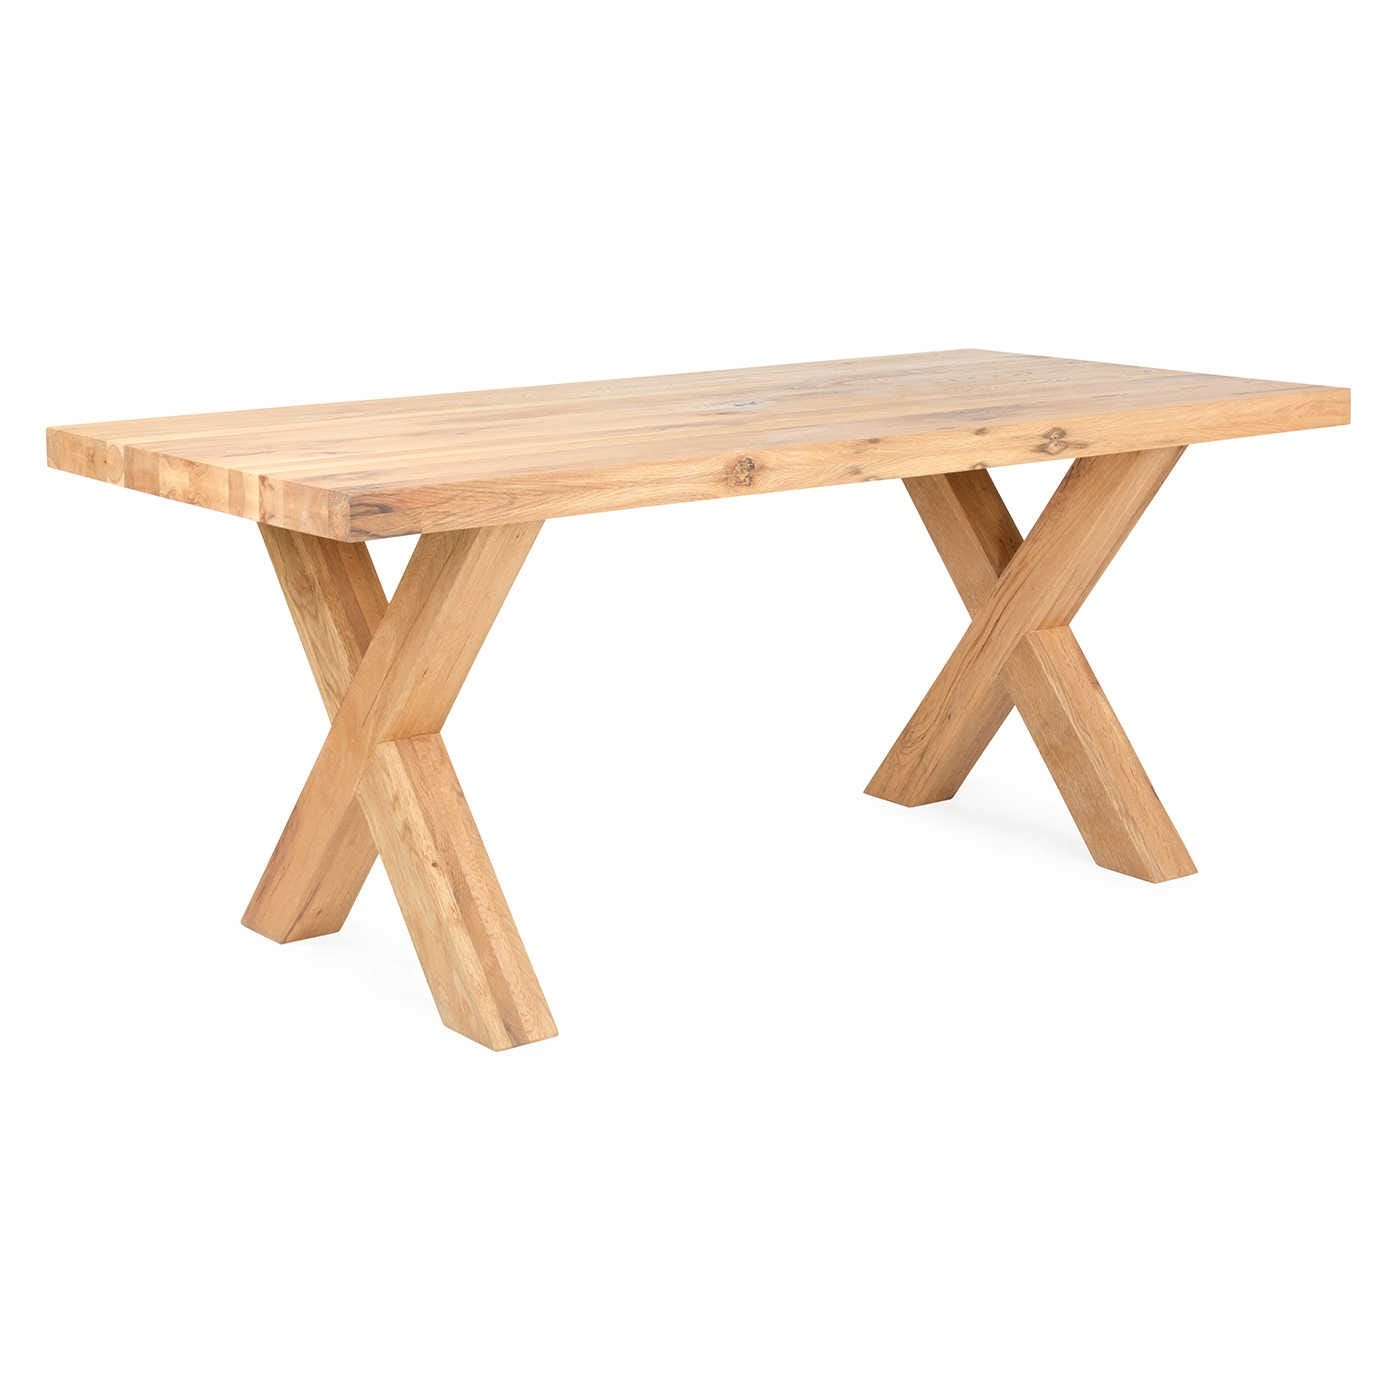 Trentino Dining Table